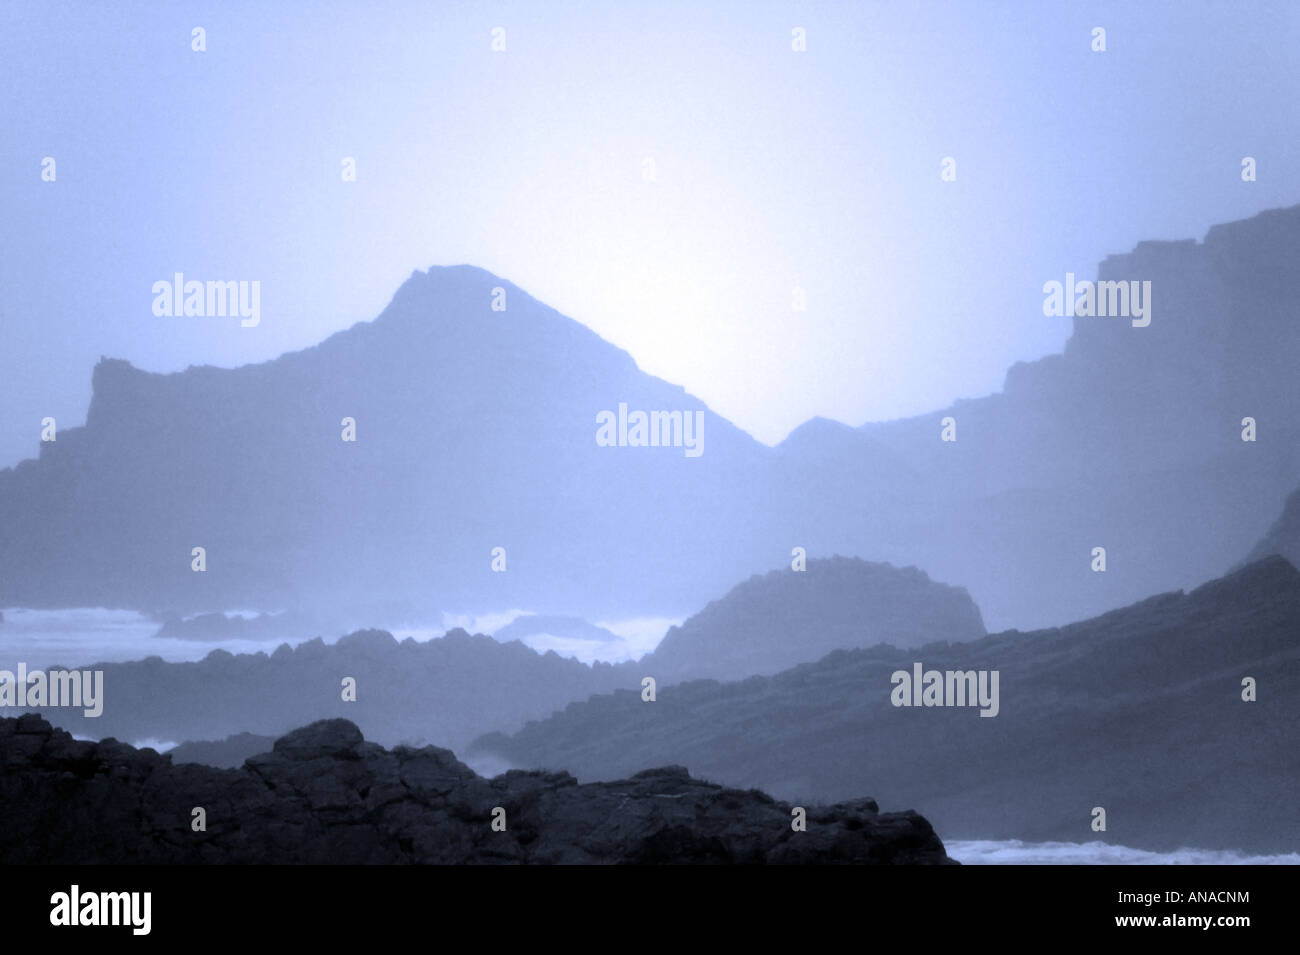 Sea fog on a rocky coastline grainy image as a result of natural light conditions - Stock Image